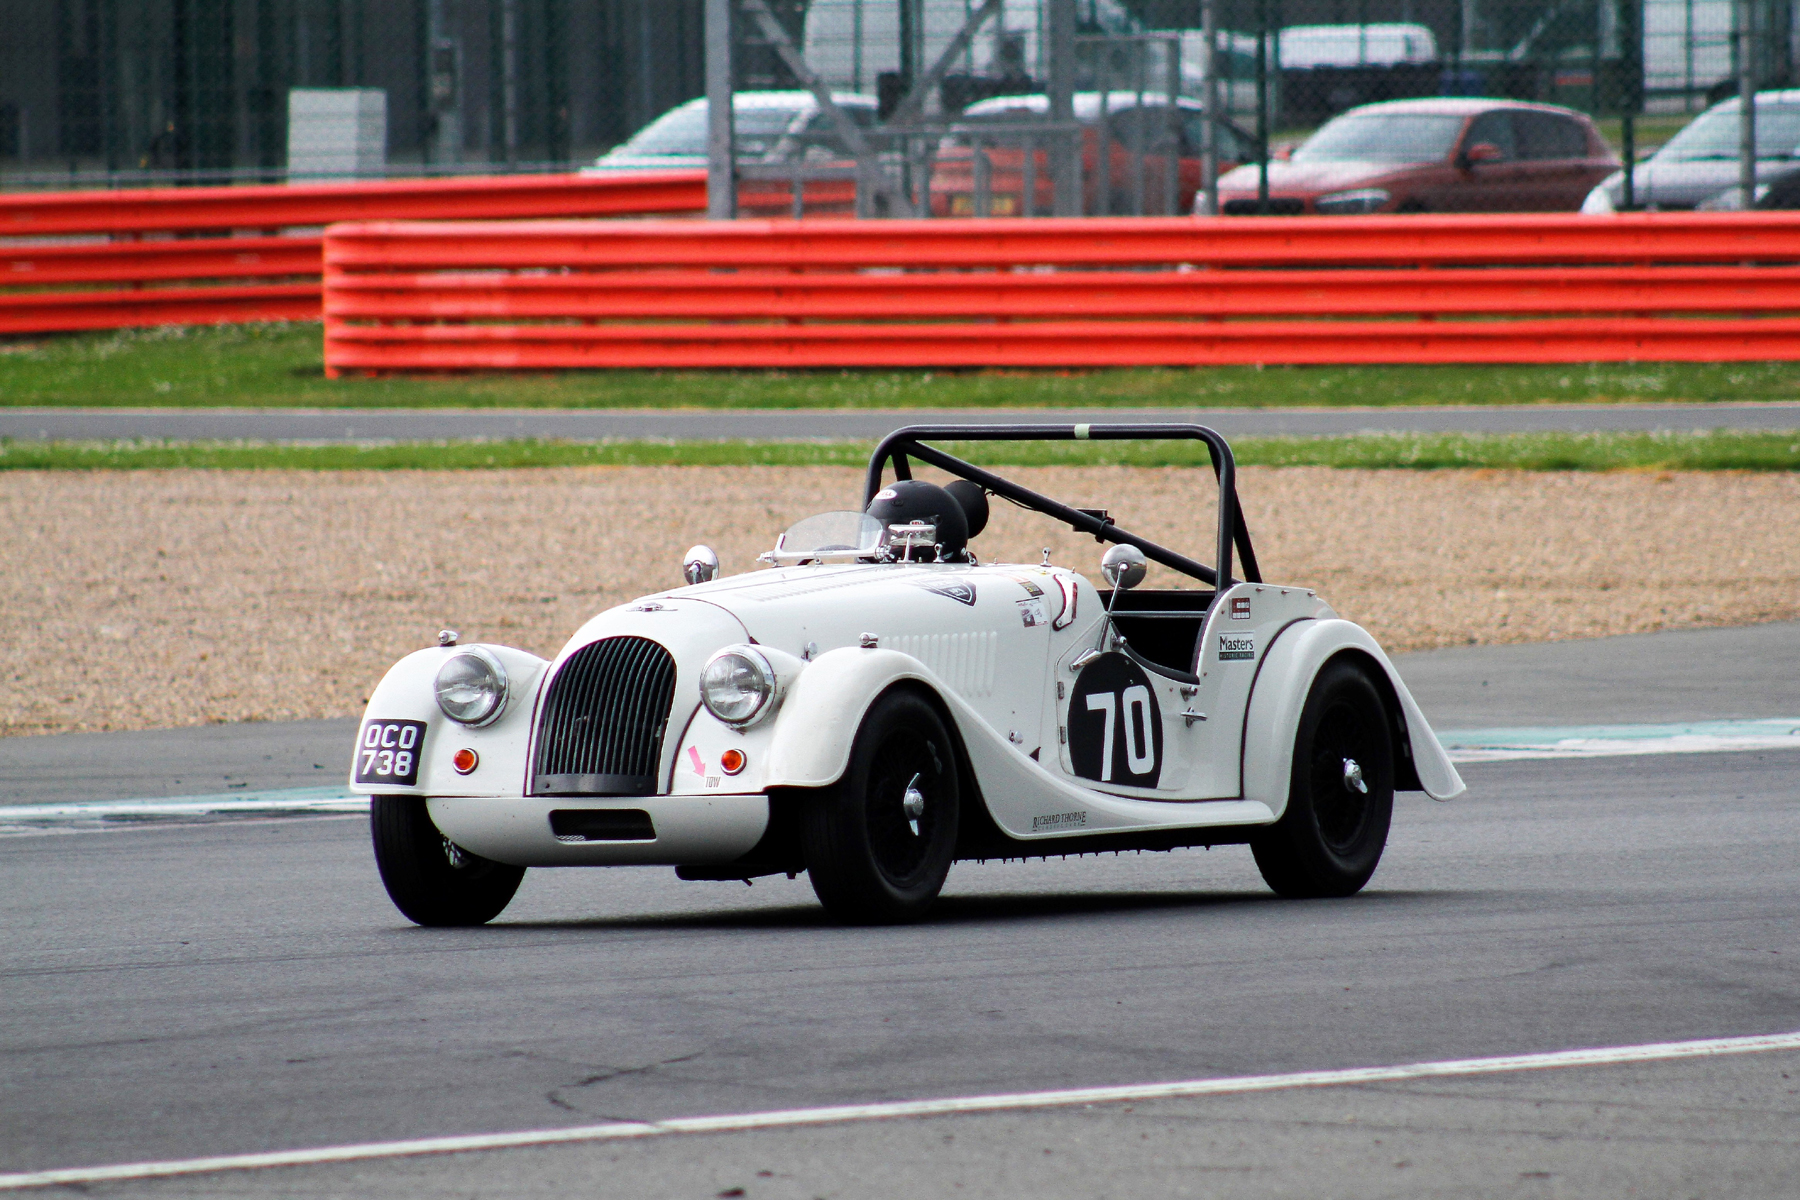 Alan House in the Morgan +4 . Photo - Bob Bull, Tripos Media